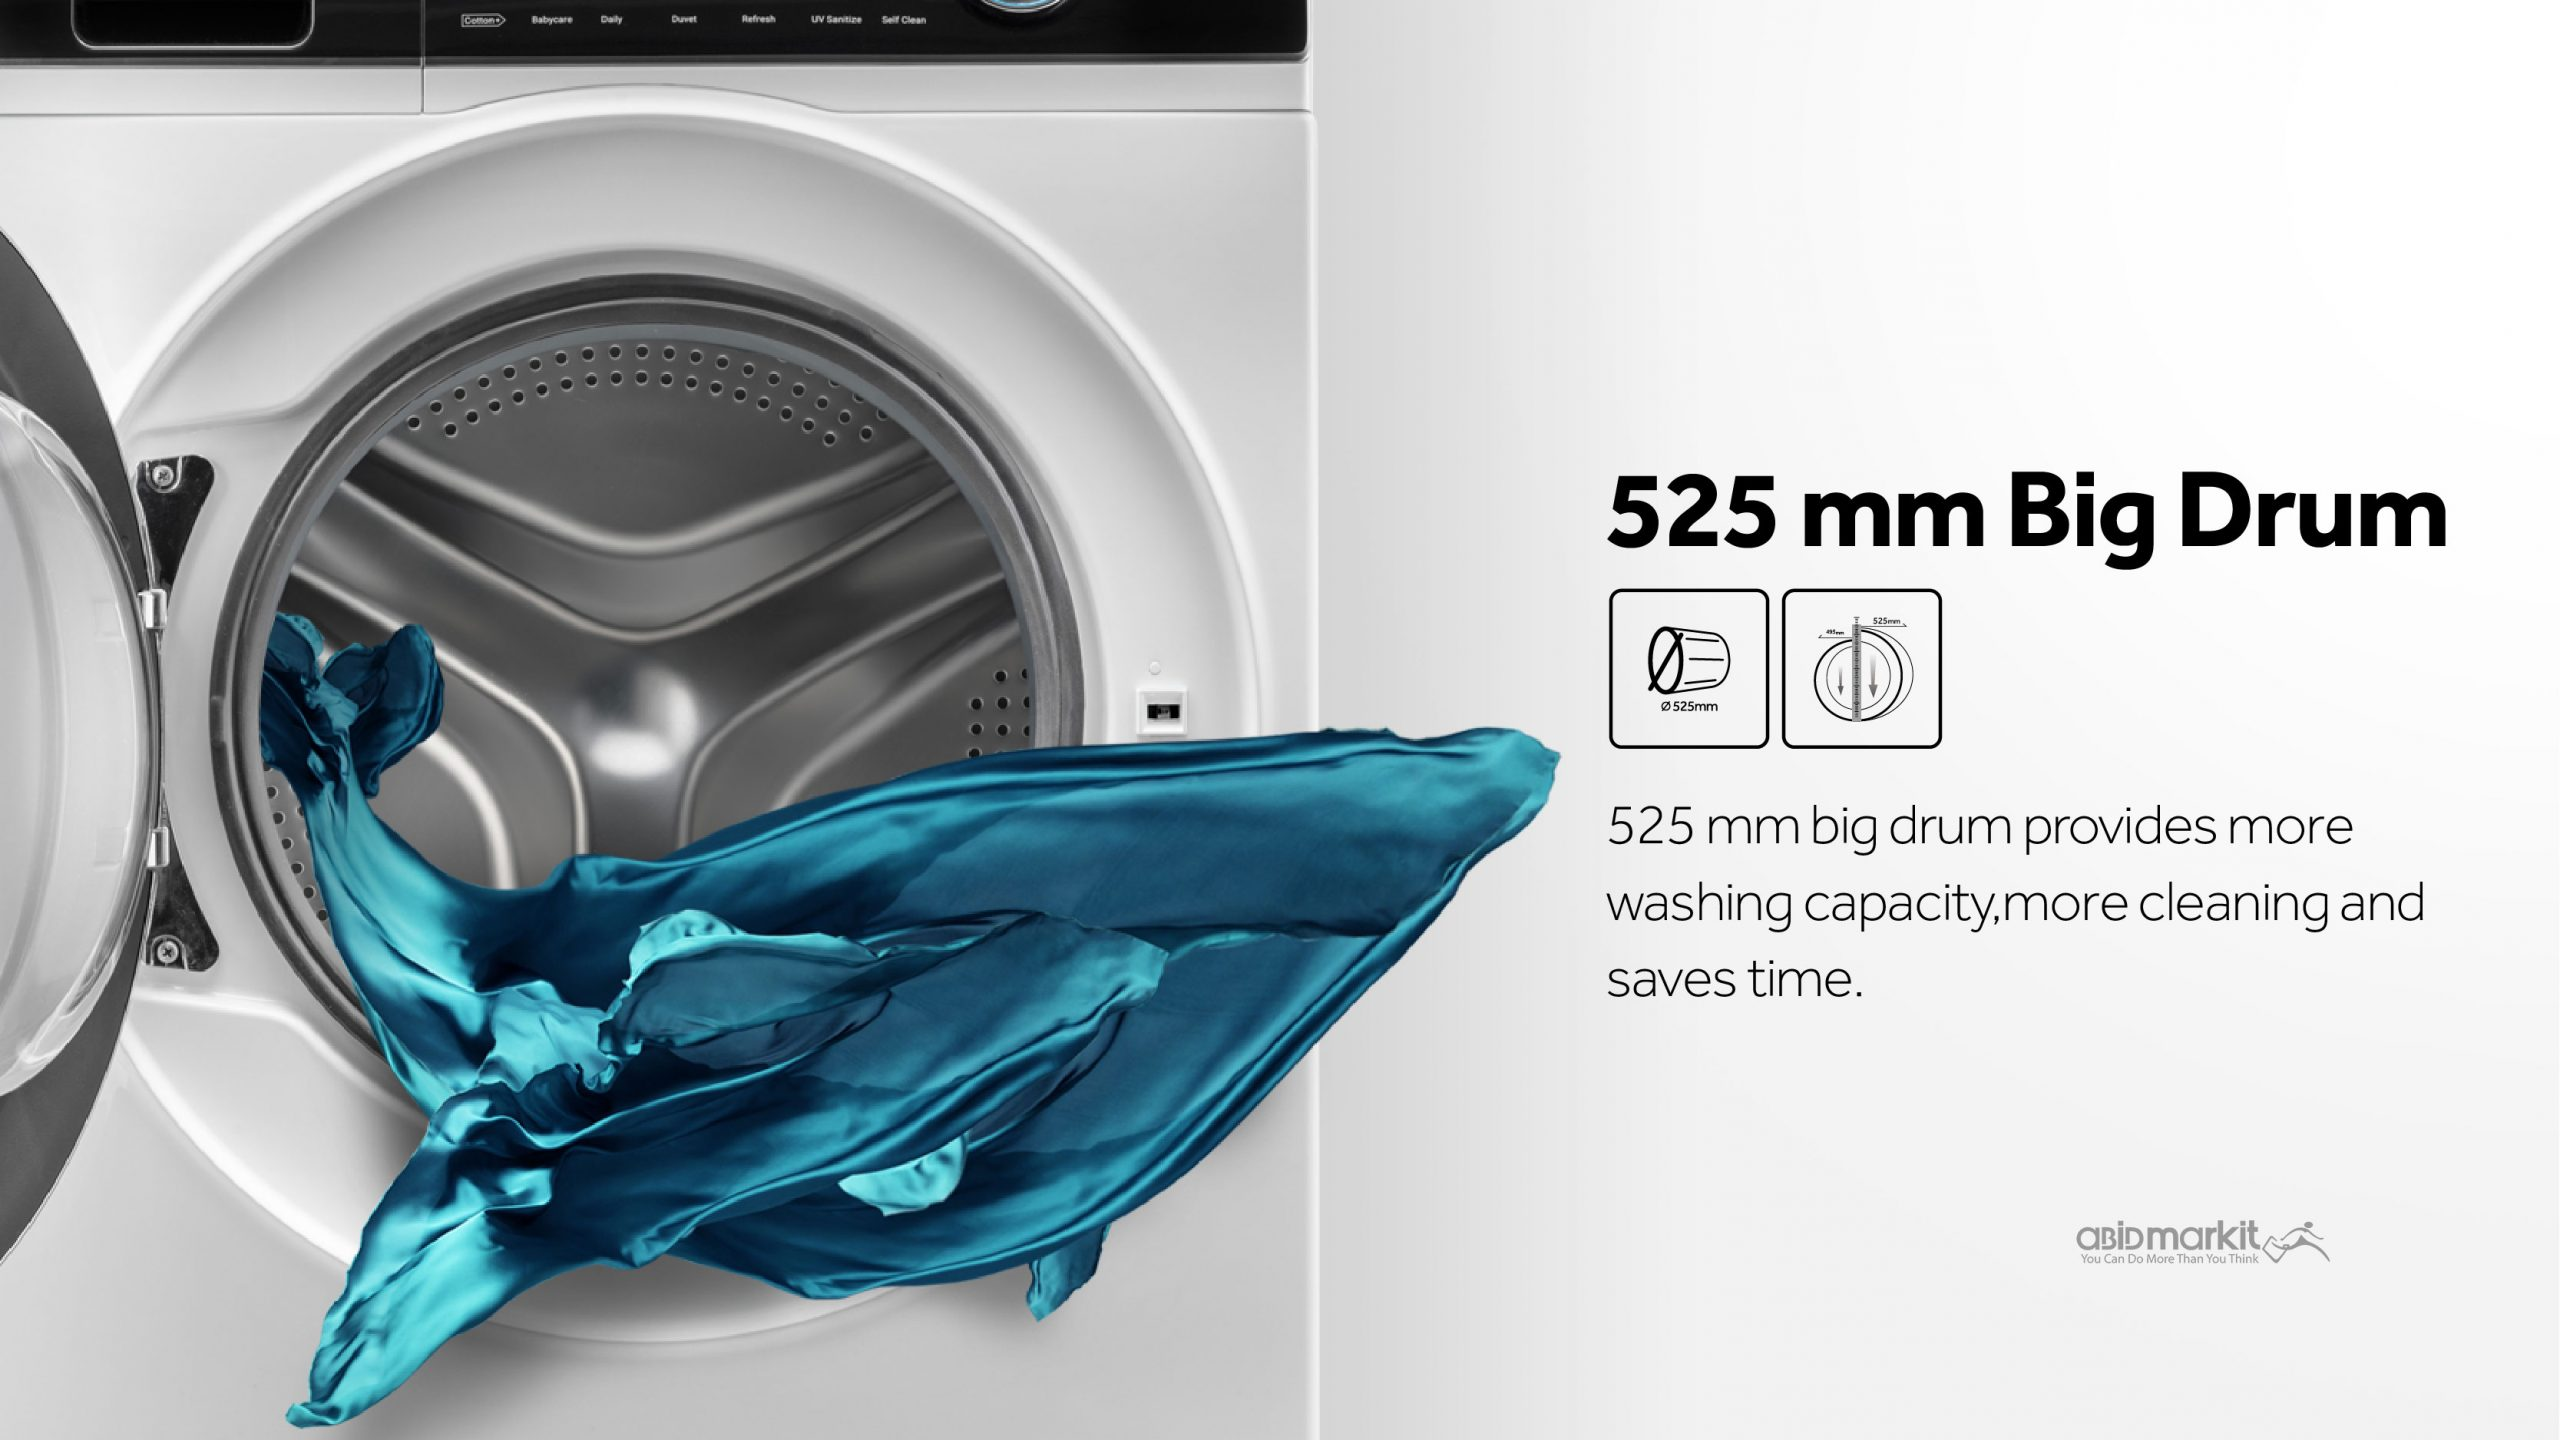 12-Abid-Market-Haier-Products-Washing-Machines-Front-Load-DL-12